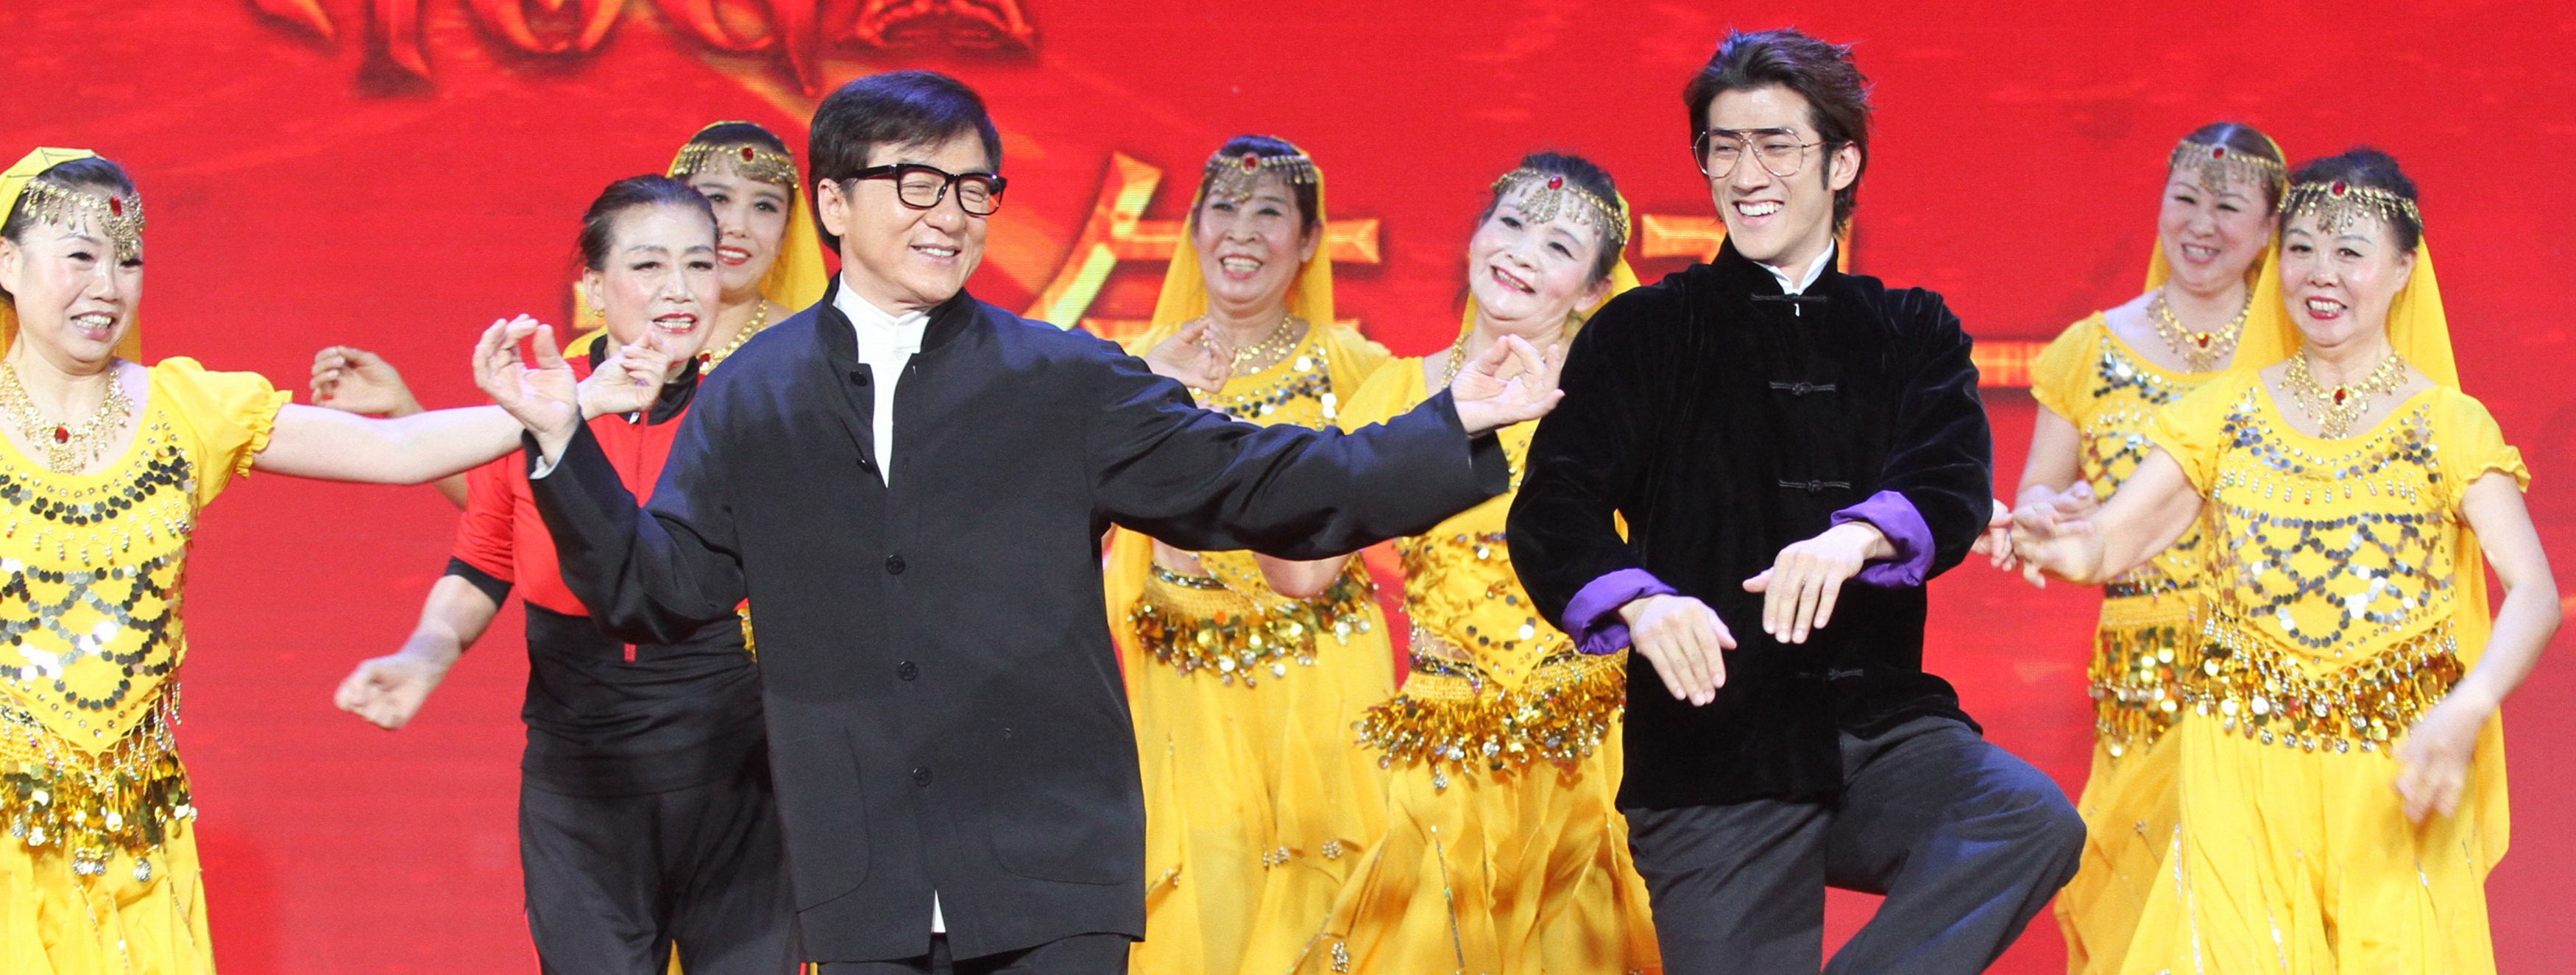 Kung-Fu Yoga actors Jackie Chan and Aarif Lee at a Beijing press conference, January 2017 (Photo: Getty Images/VCG)